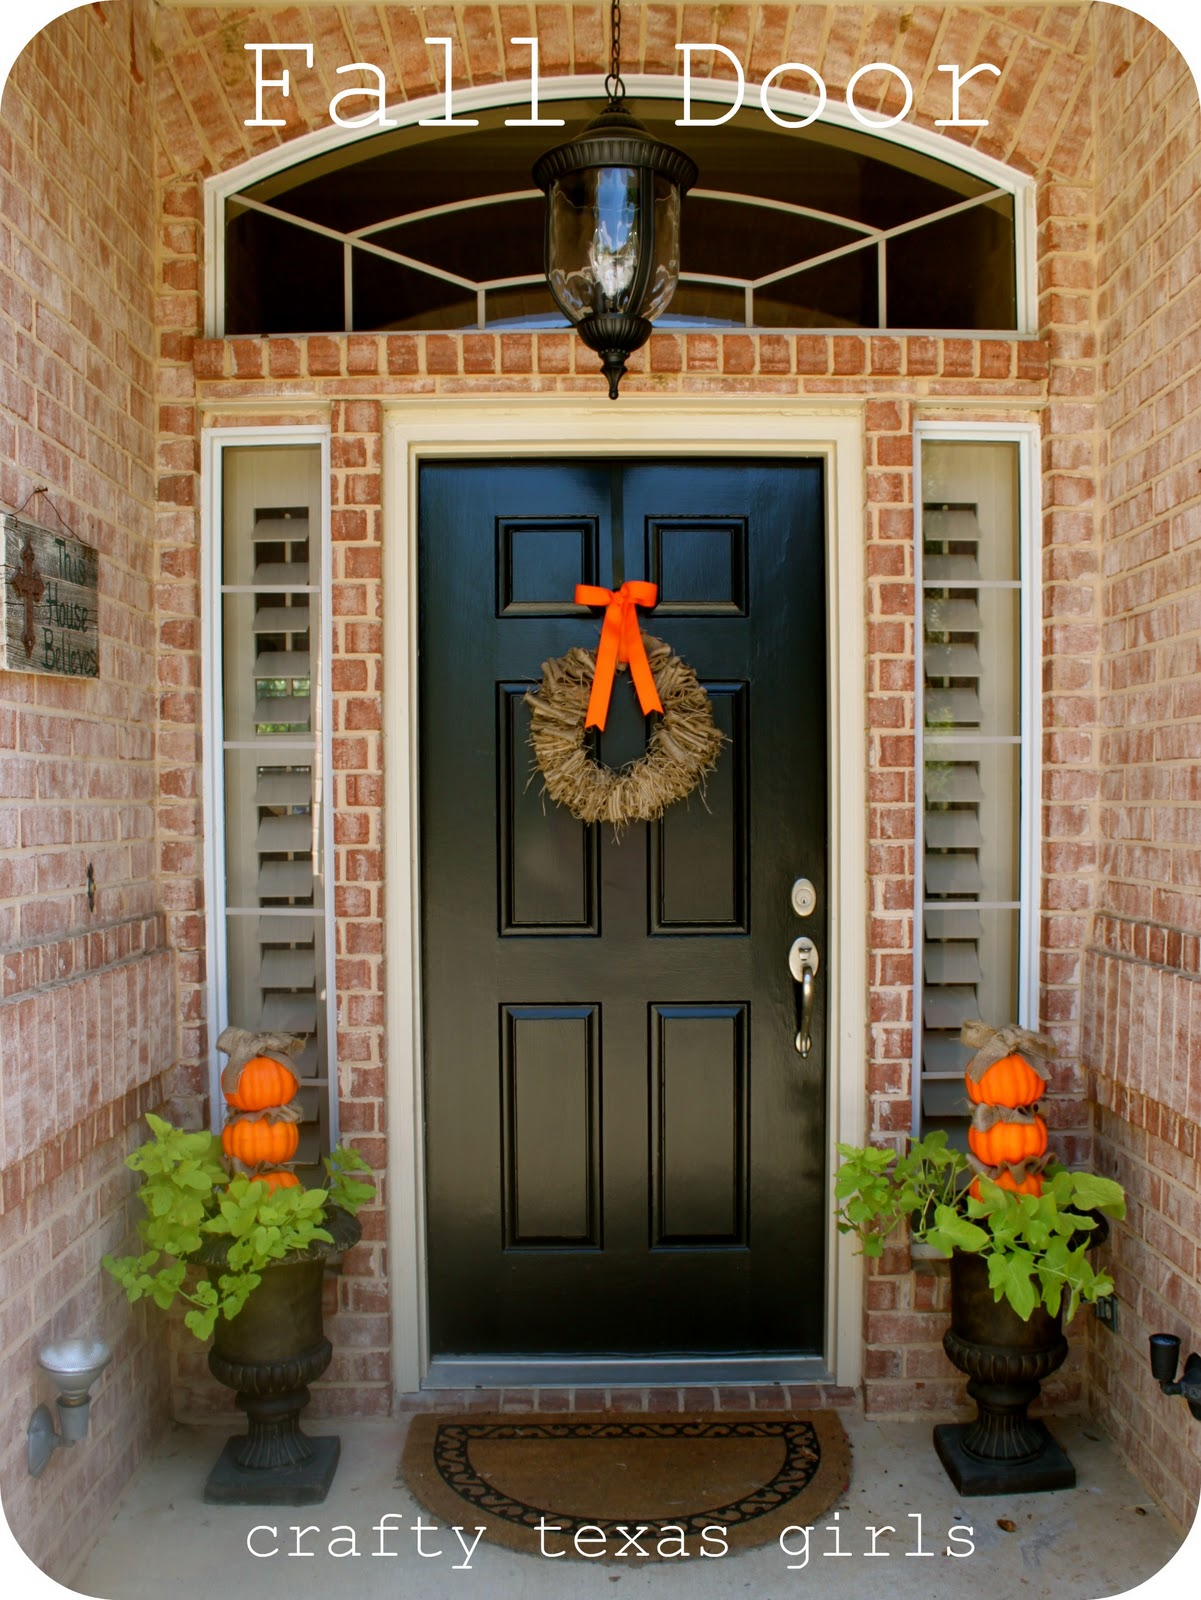 Crafty texas girls fall door Small front porch decorating ideas for fall